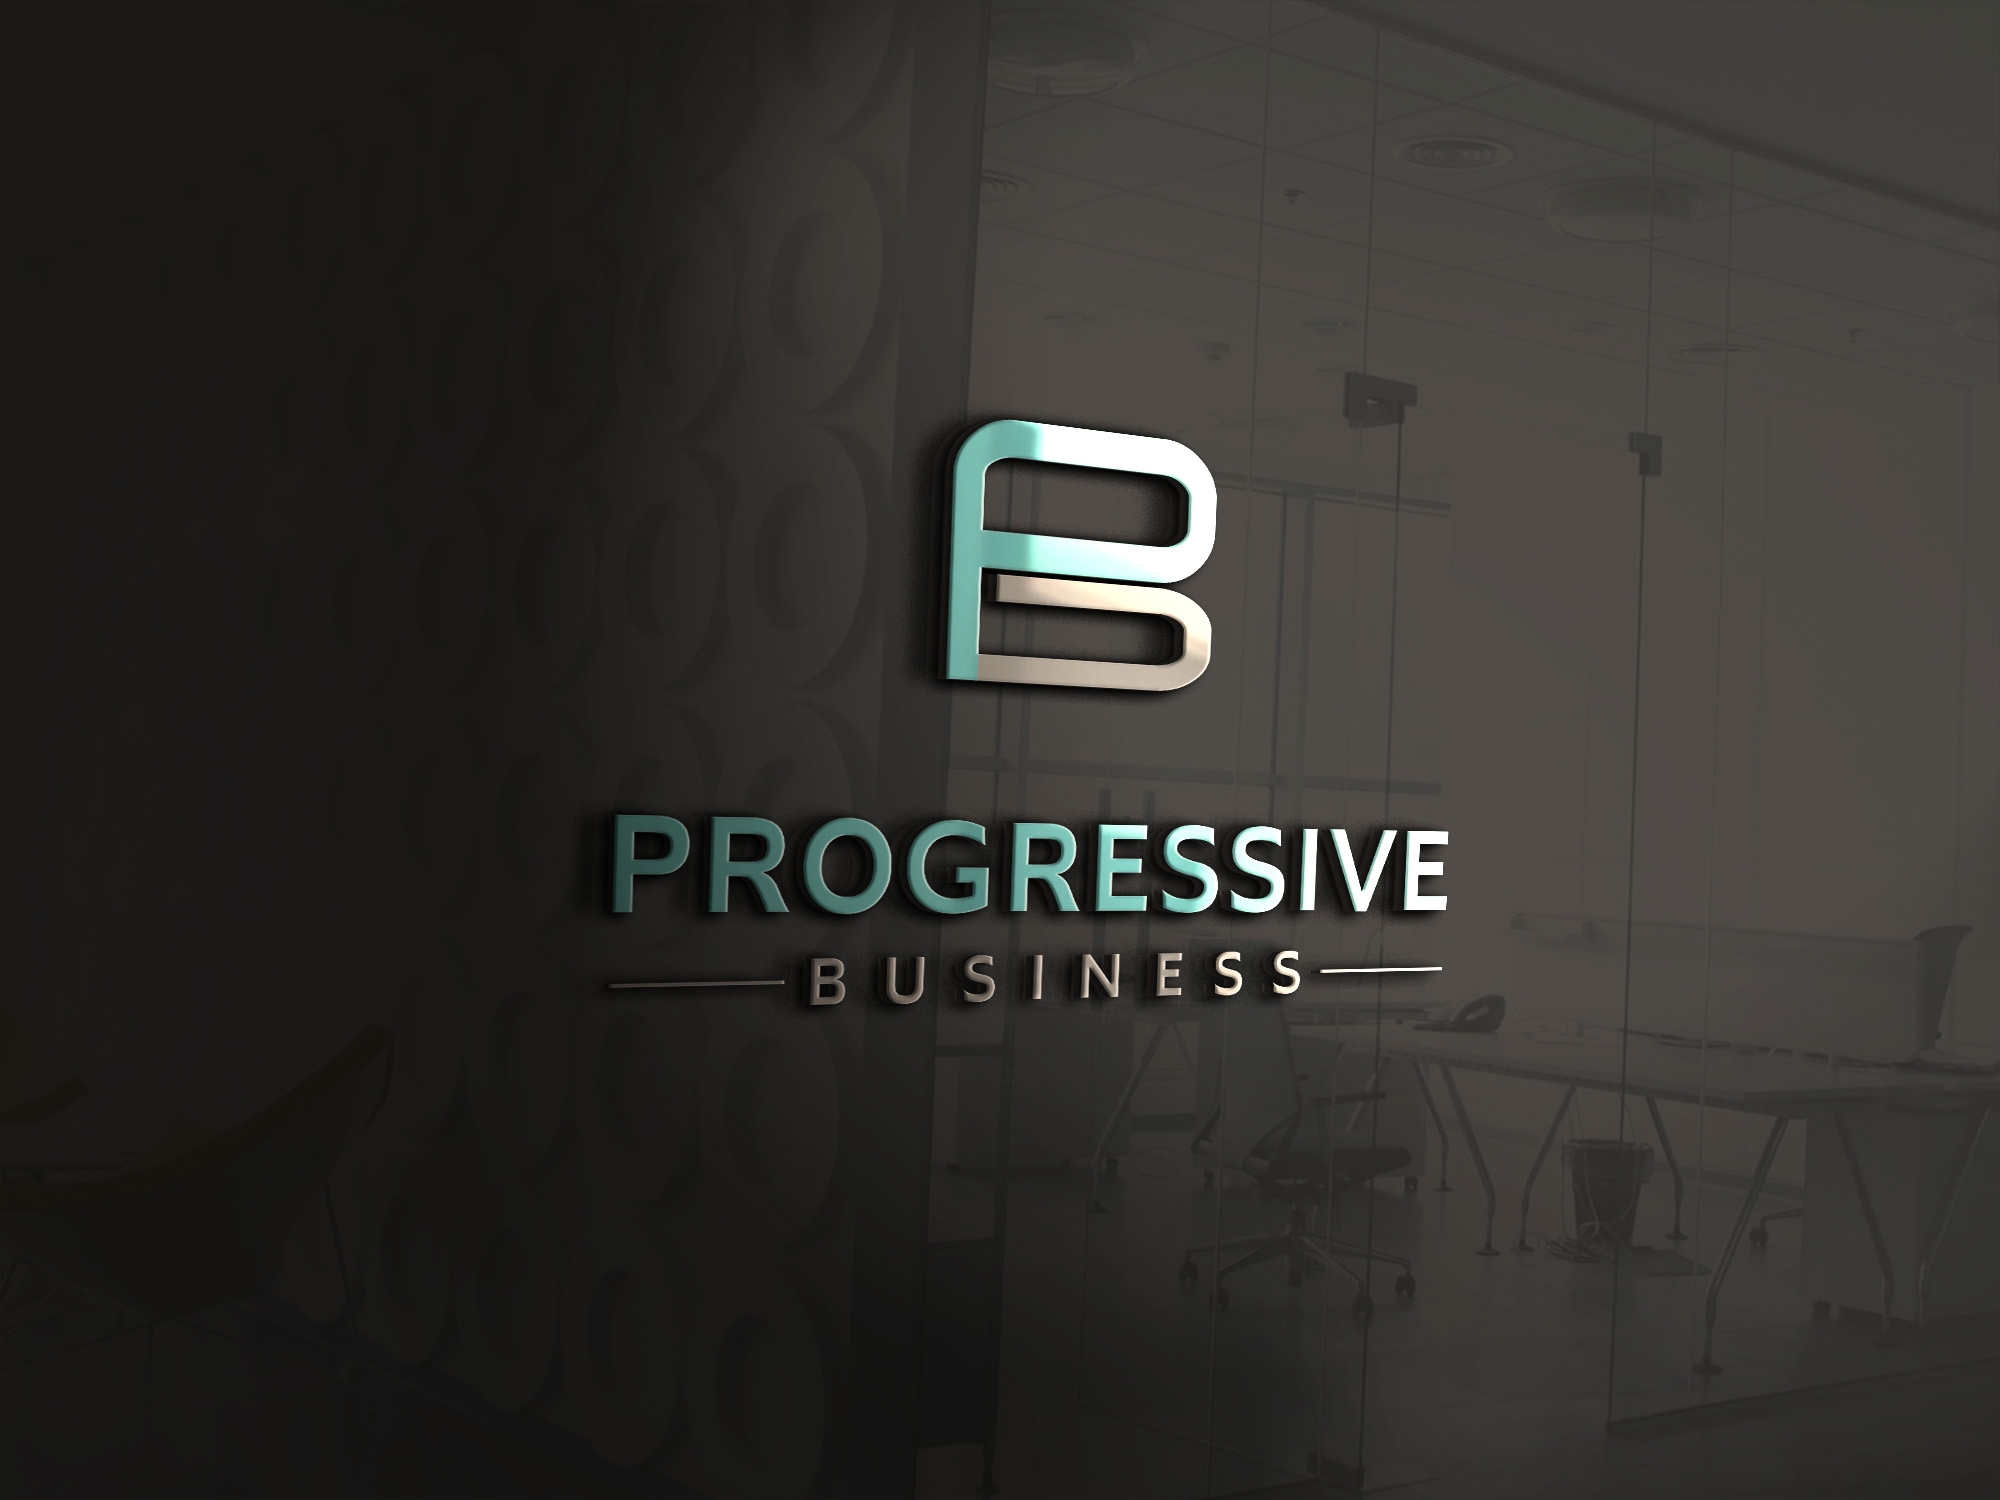 Logo Design by Umair ahmed Iqbal - Entry No. 219 in the Logo Design Contest Captivating Logo Design for Progressive Business.